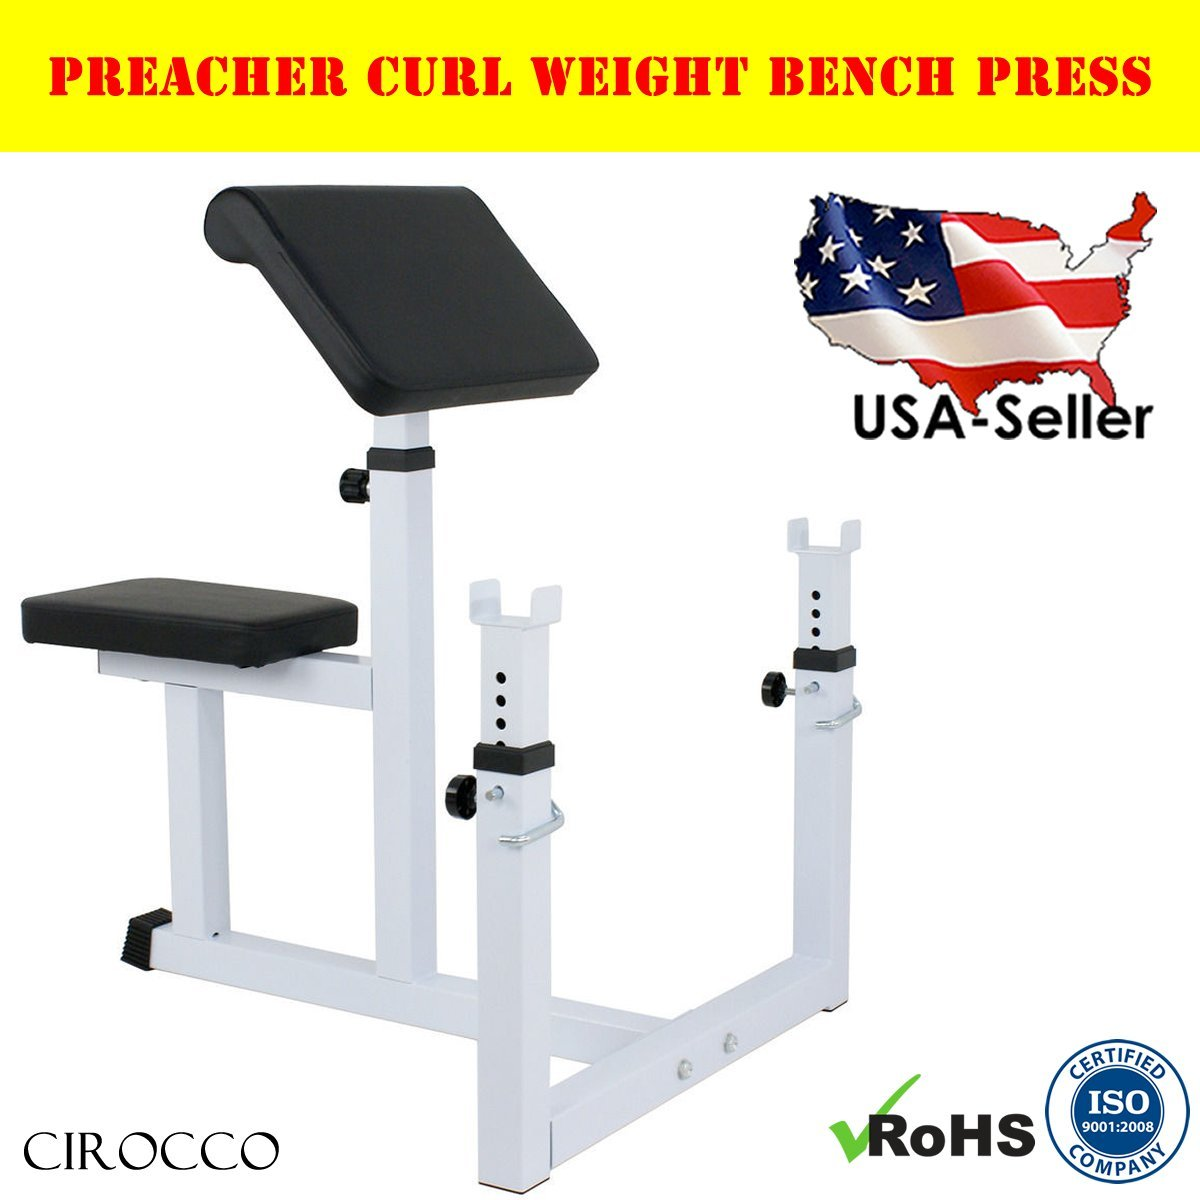 Cirocco Preacher Curl Weight Bench Press | Seated Arm Rest Curling Biceps Barbell Dumbbell - Adjustable Seat Bar Machine Isolated Station | For Commercial Home Gym Fitness Exercise Training Workout